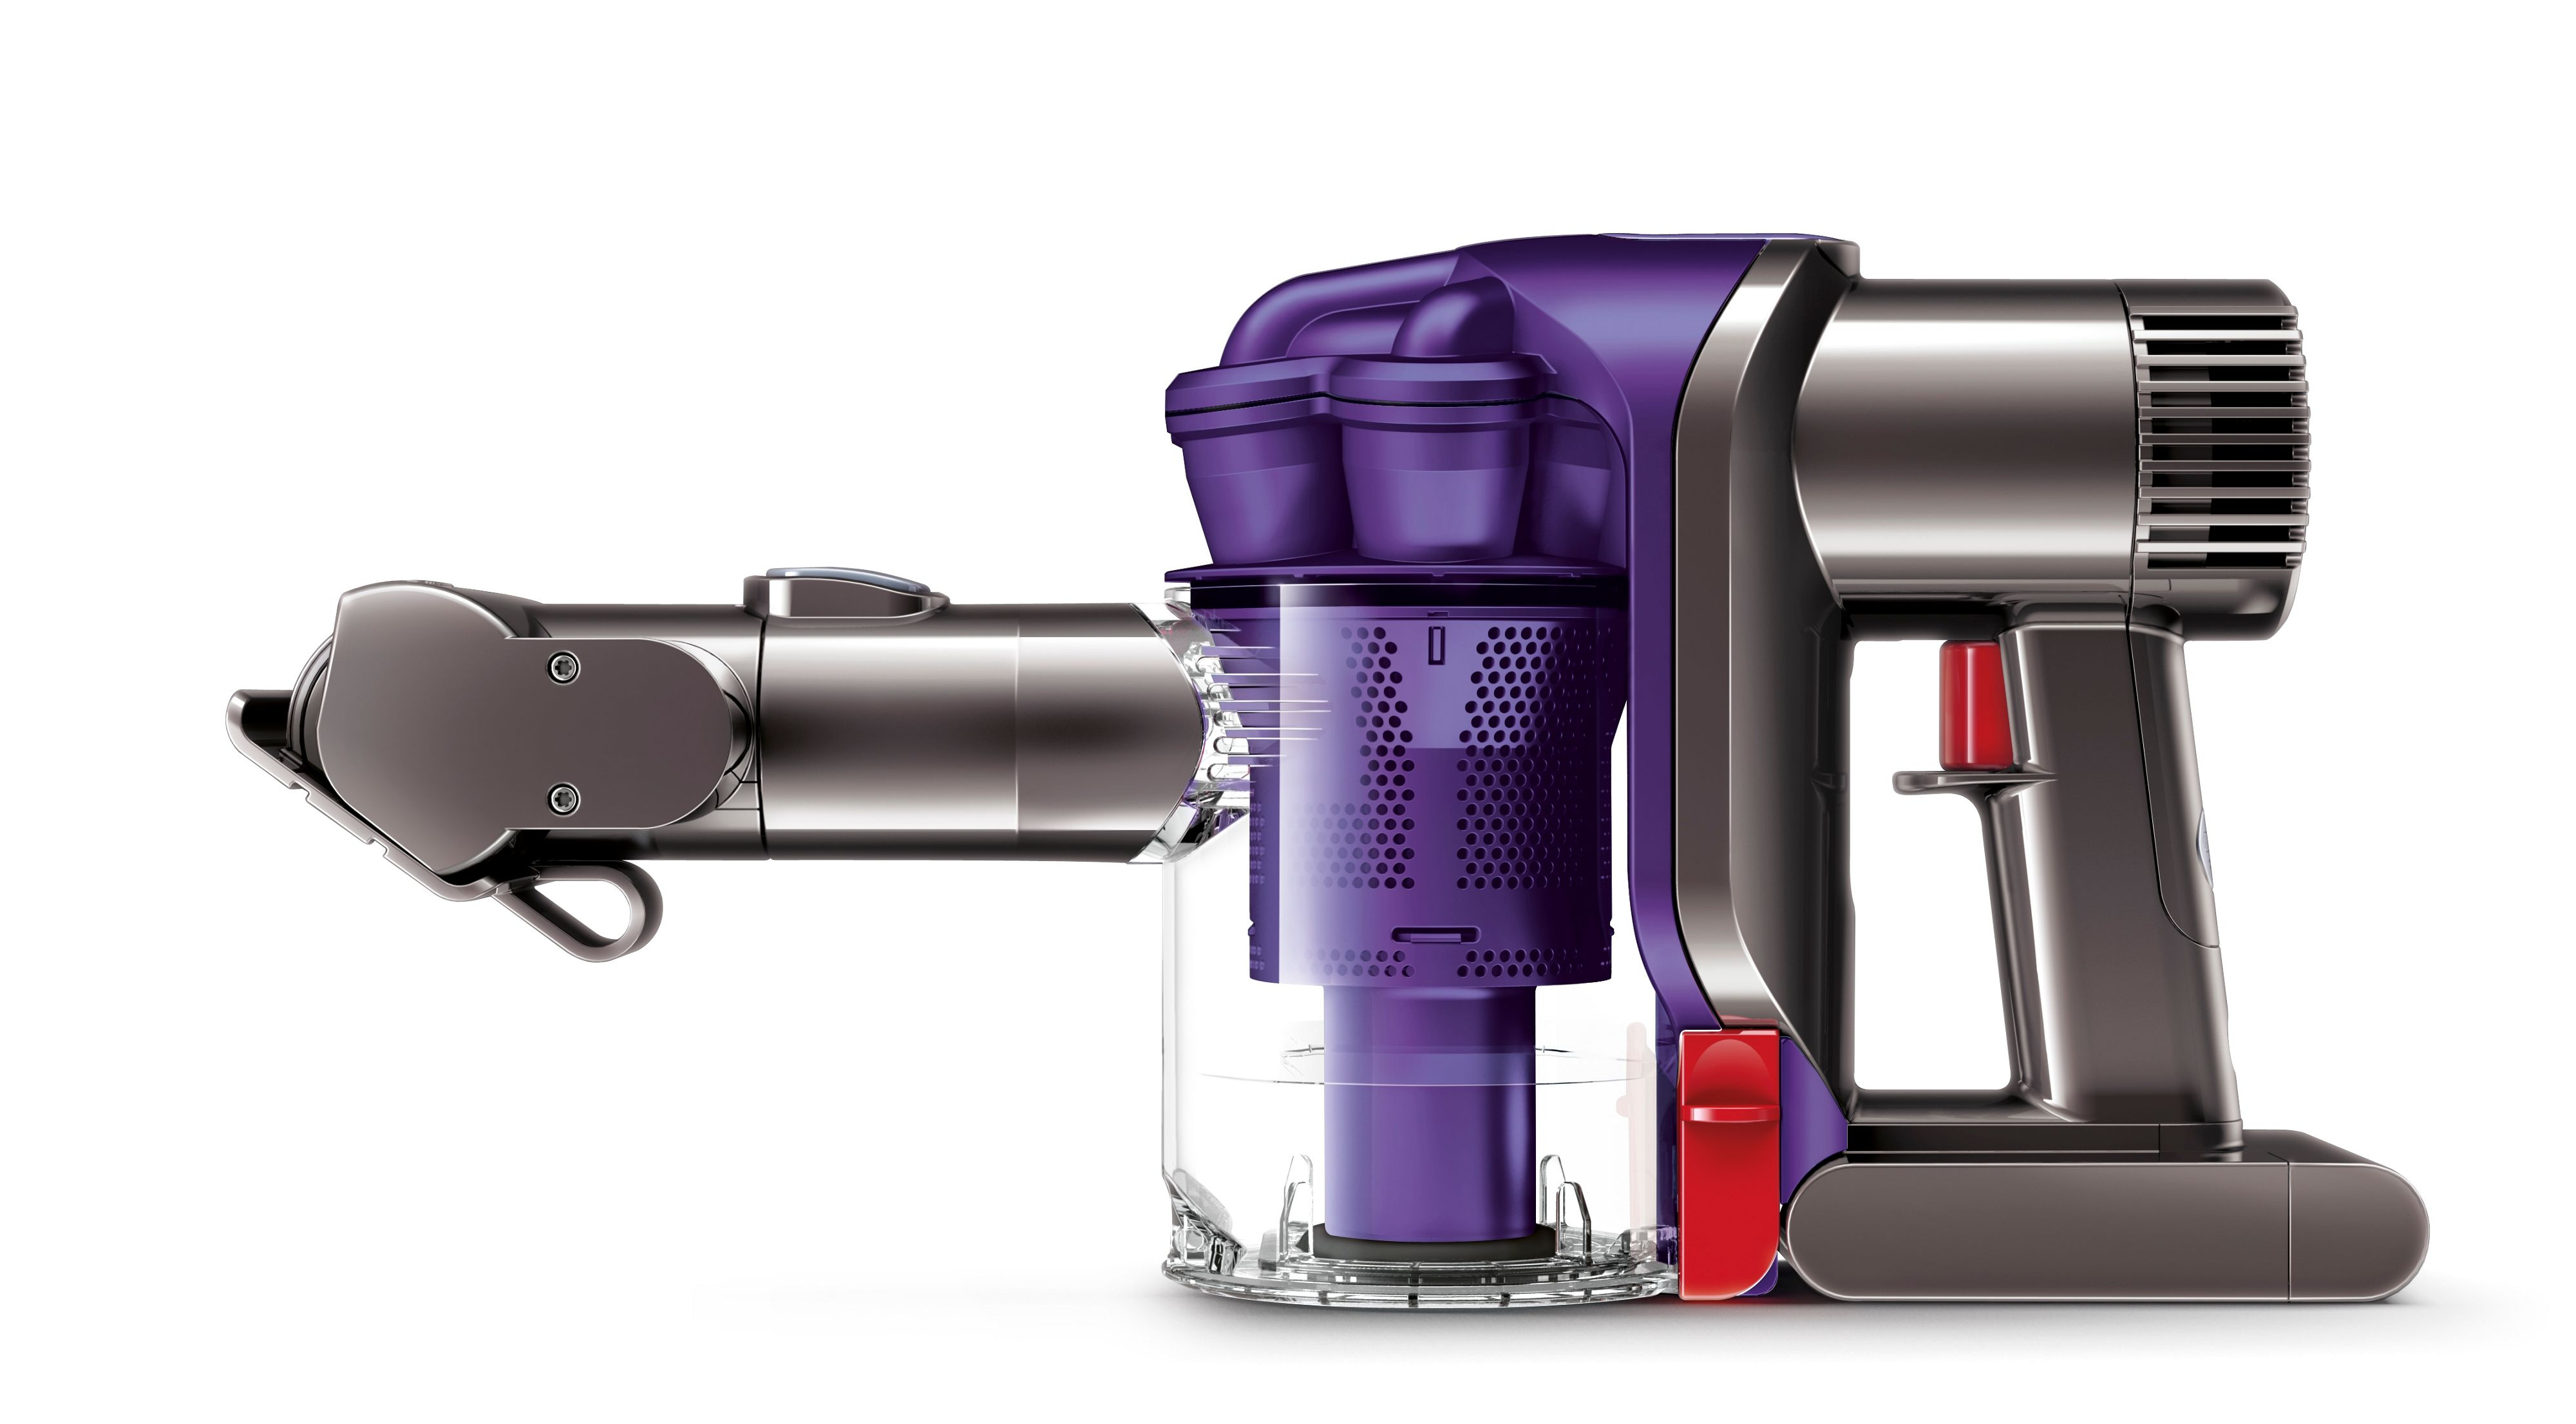 Dyson DC34 Animal MultiFloor Handheld Vacuum Cleaner